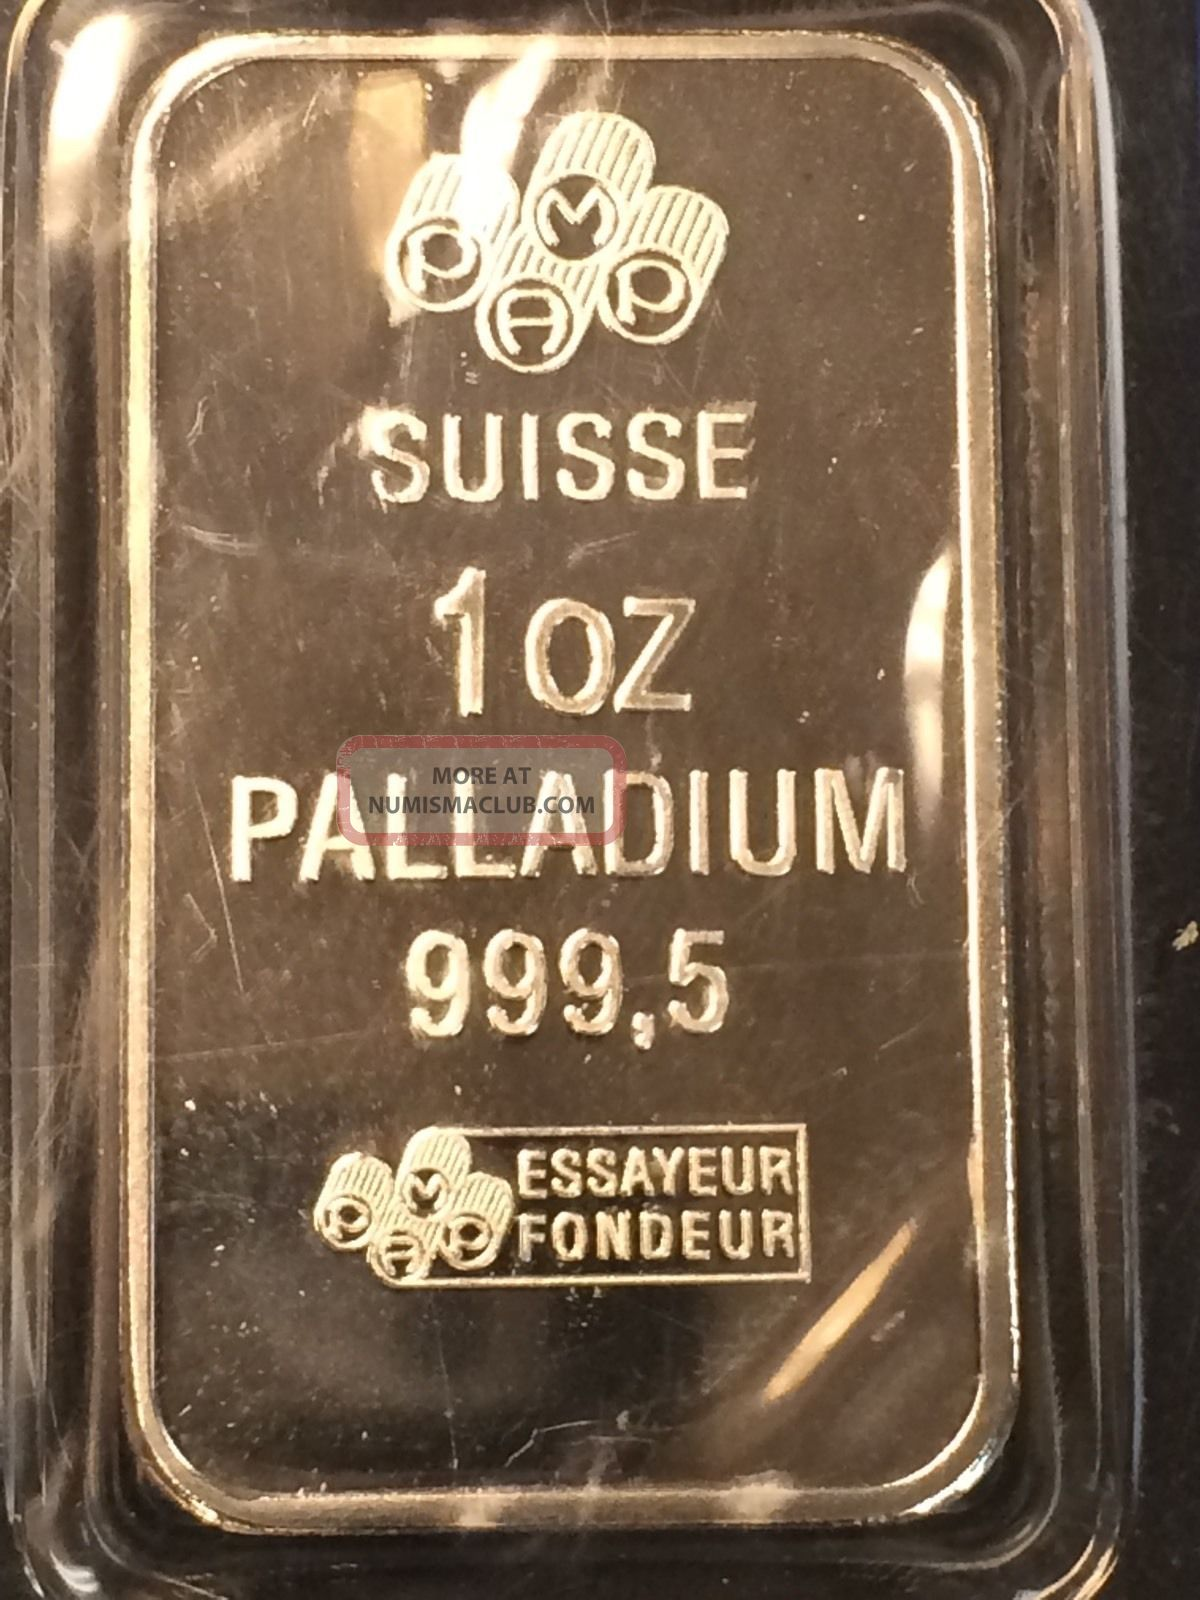 essayeur fonduer Essayeur fondeur two words that are found on most swiss gold and silver bars that are a constant source of interest for all non-french speakers.